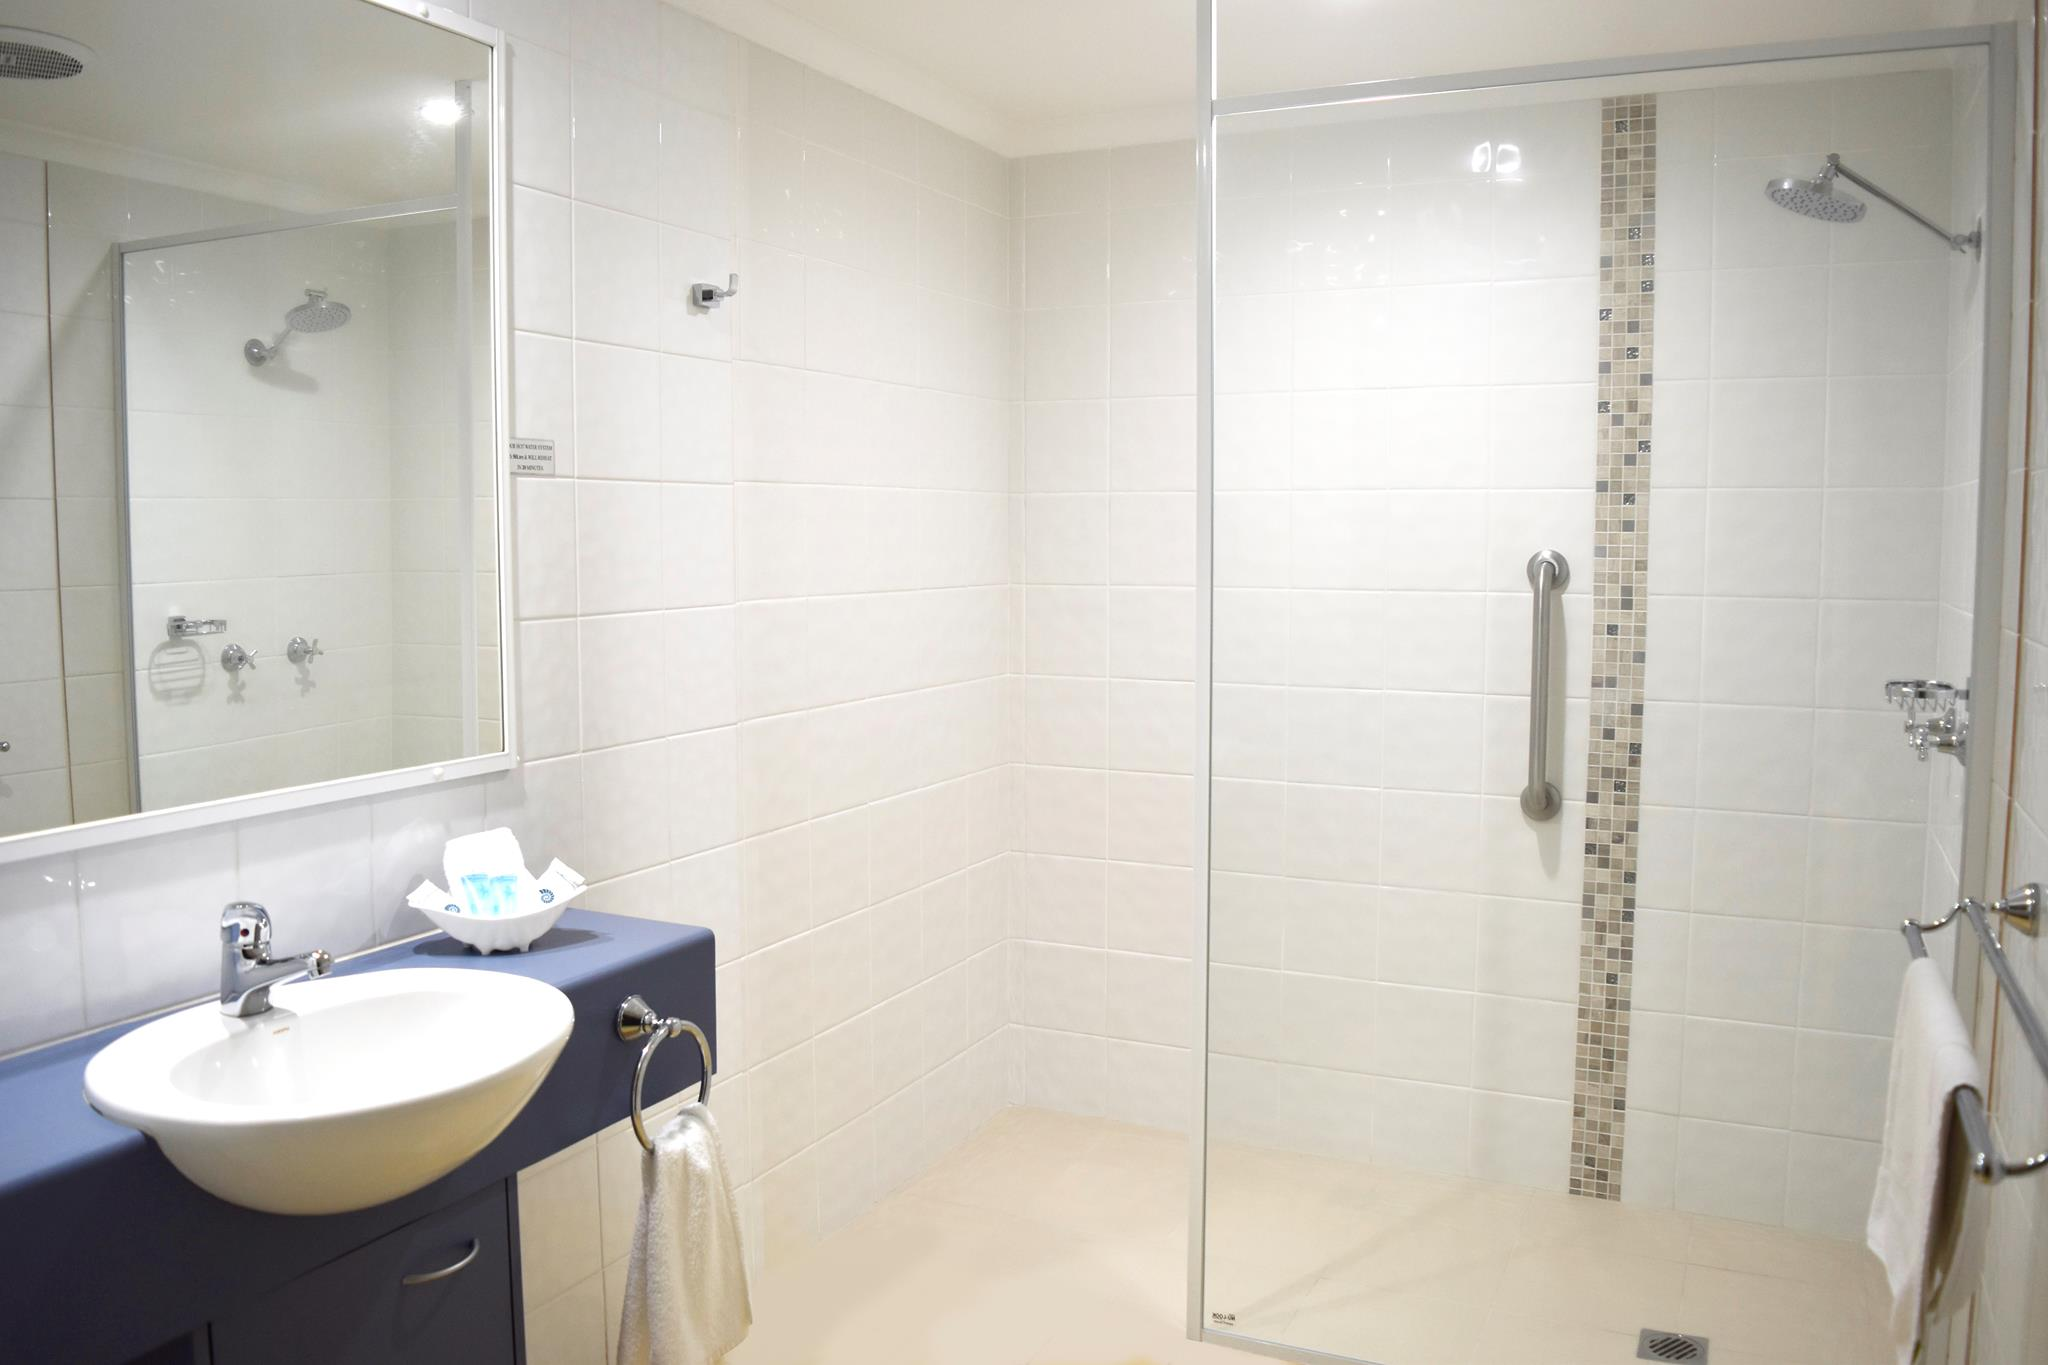 1 Bedroom Walk-in Shower